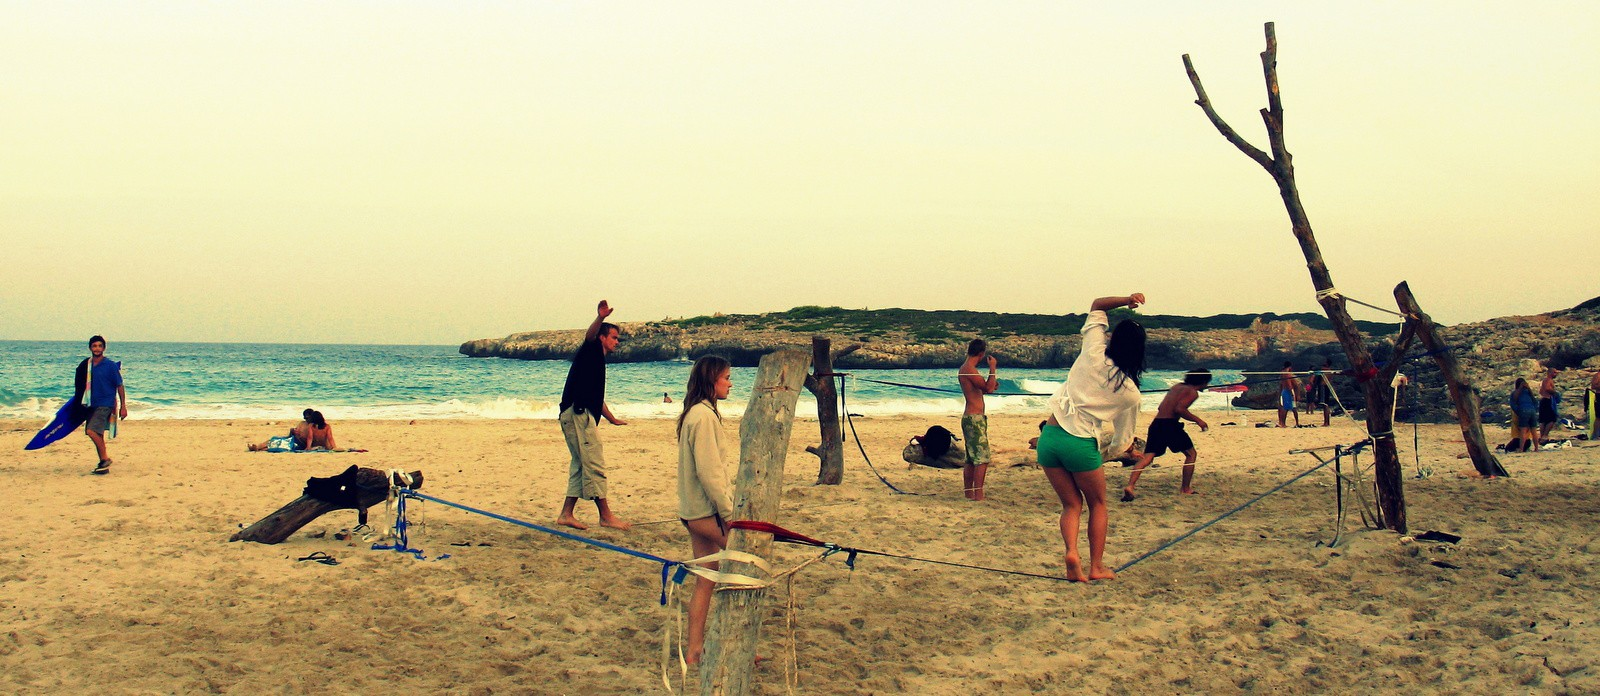 slacklining at a beach in Mallorca